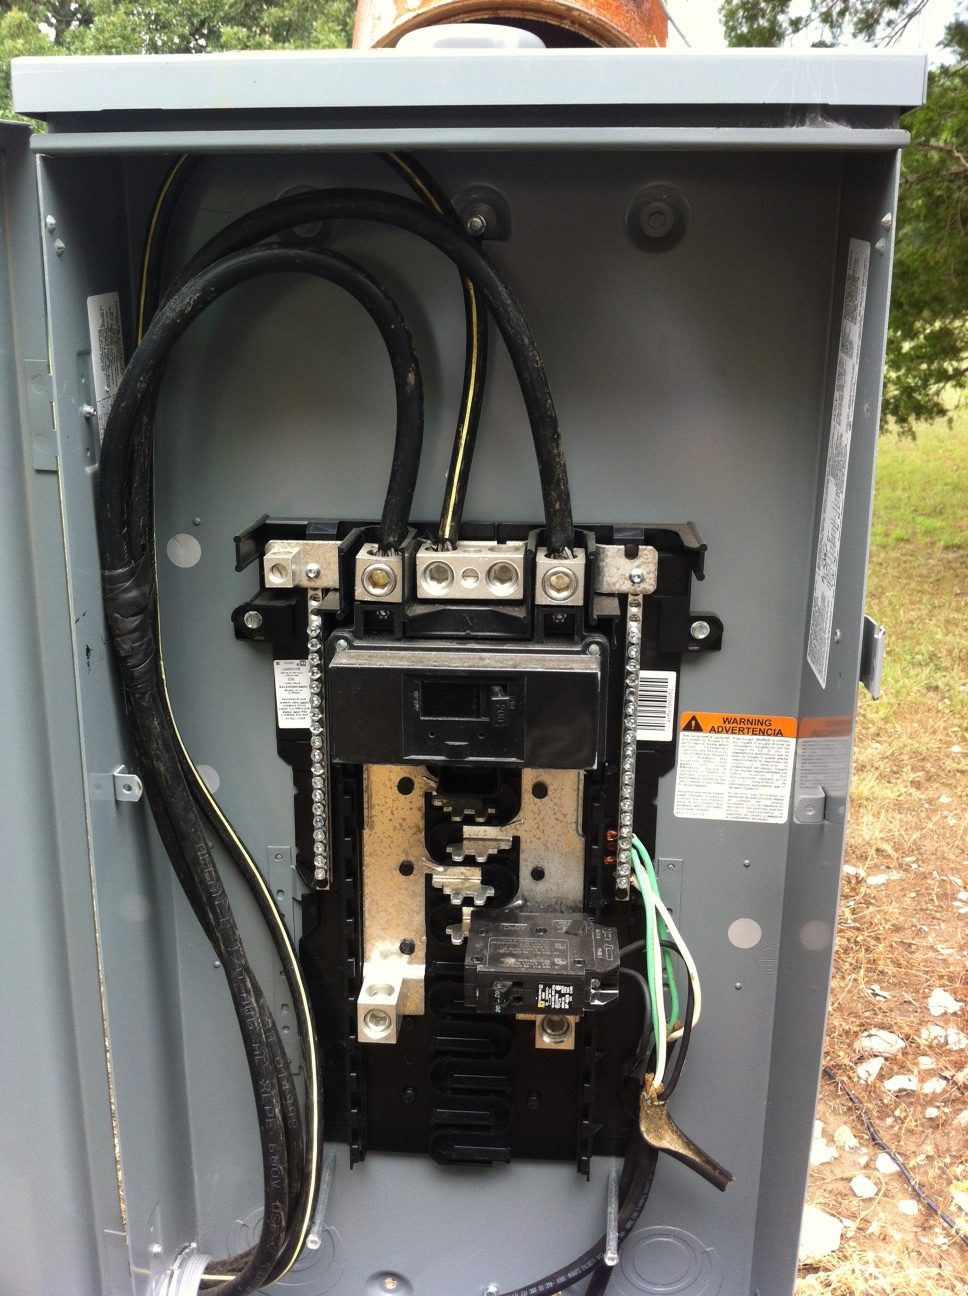 For 200 Amp Disconnect Box Wiring Diagram | Wiring Diagram - 200 Amp Breaker Box Wiring Diagram